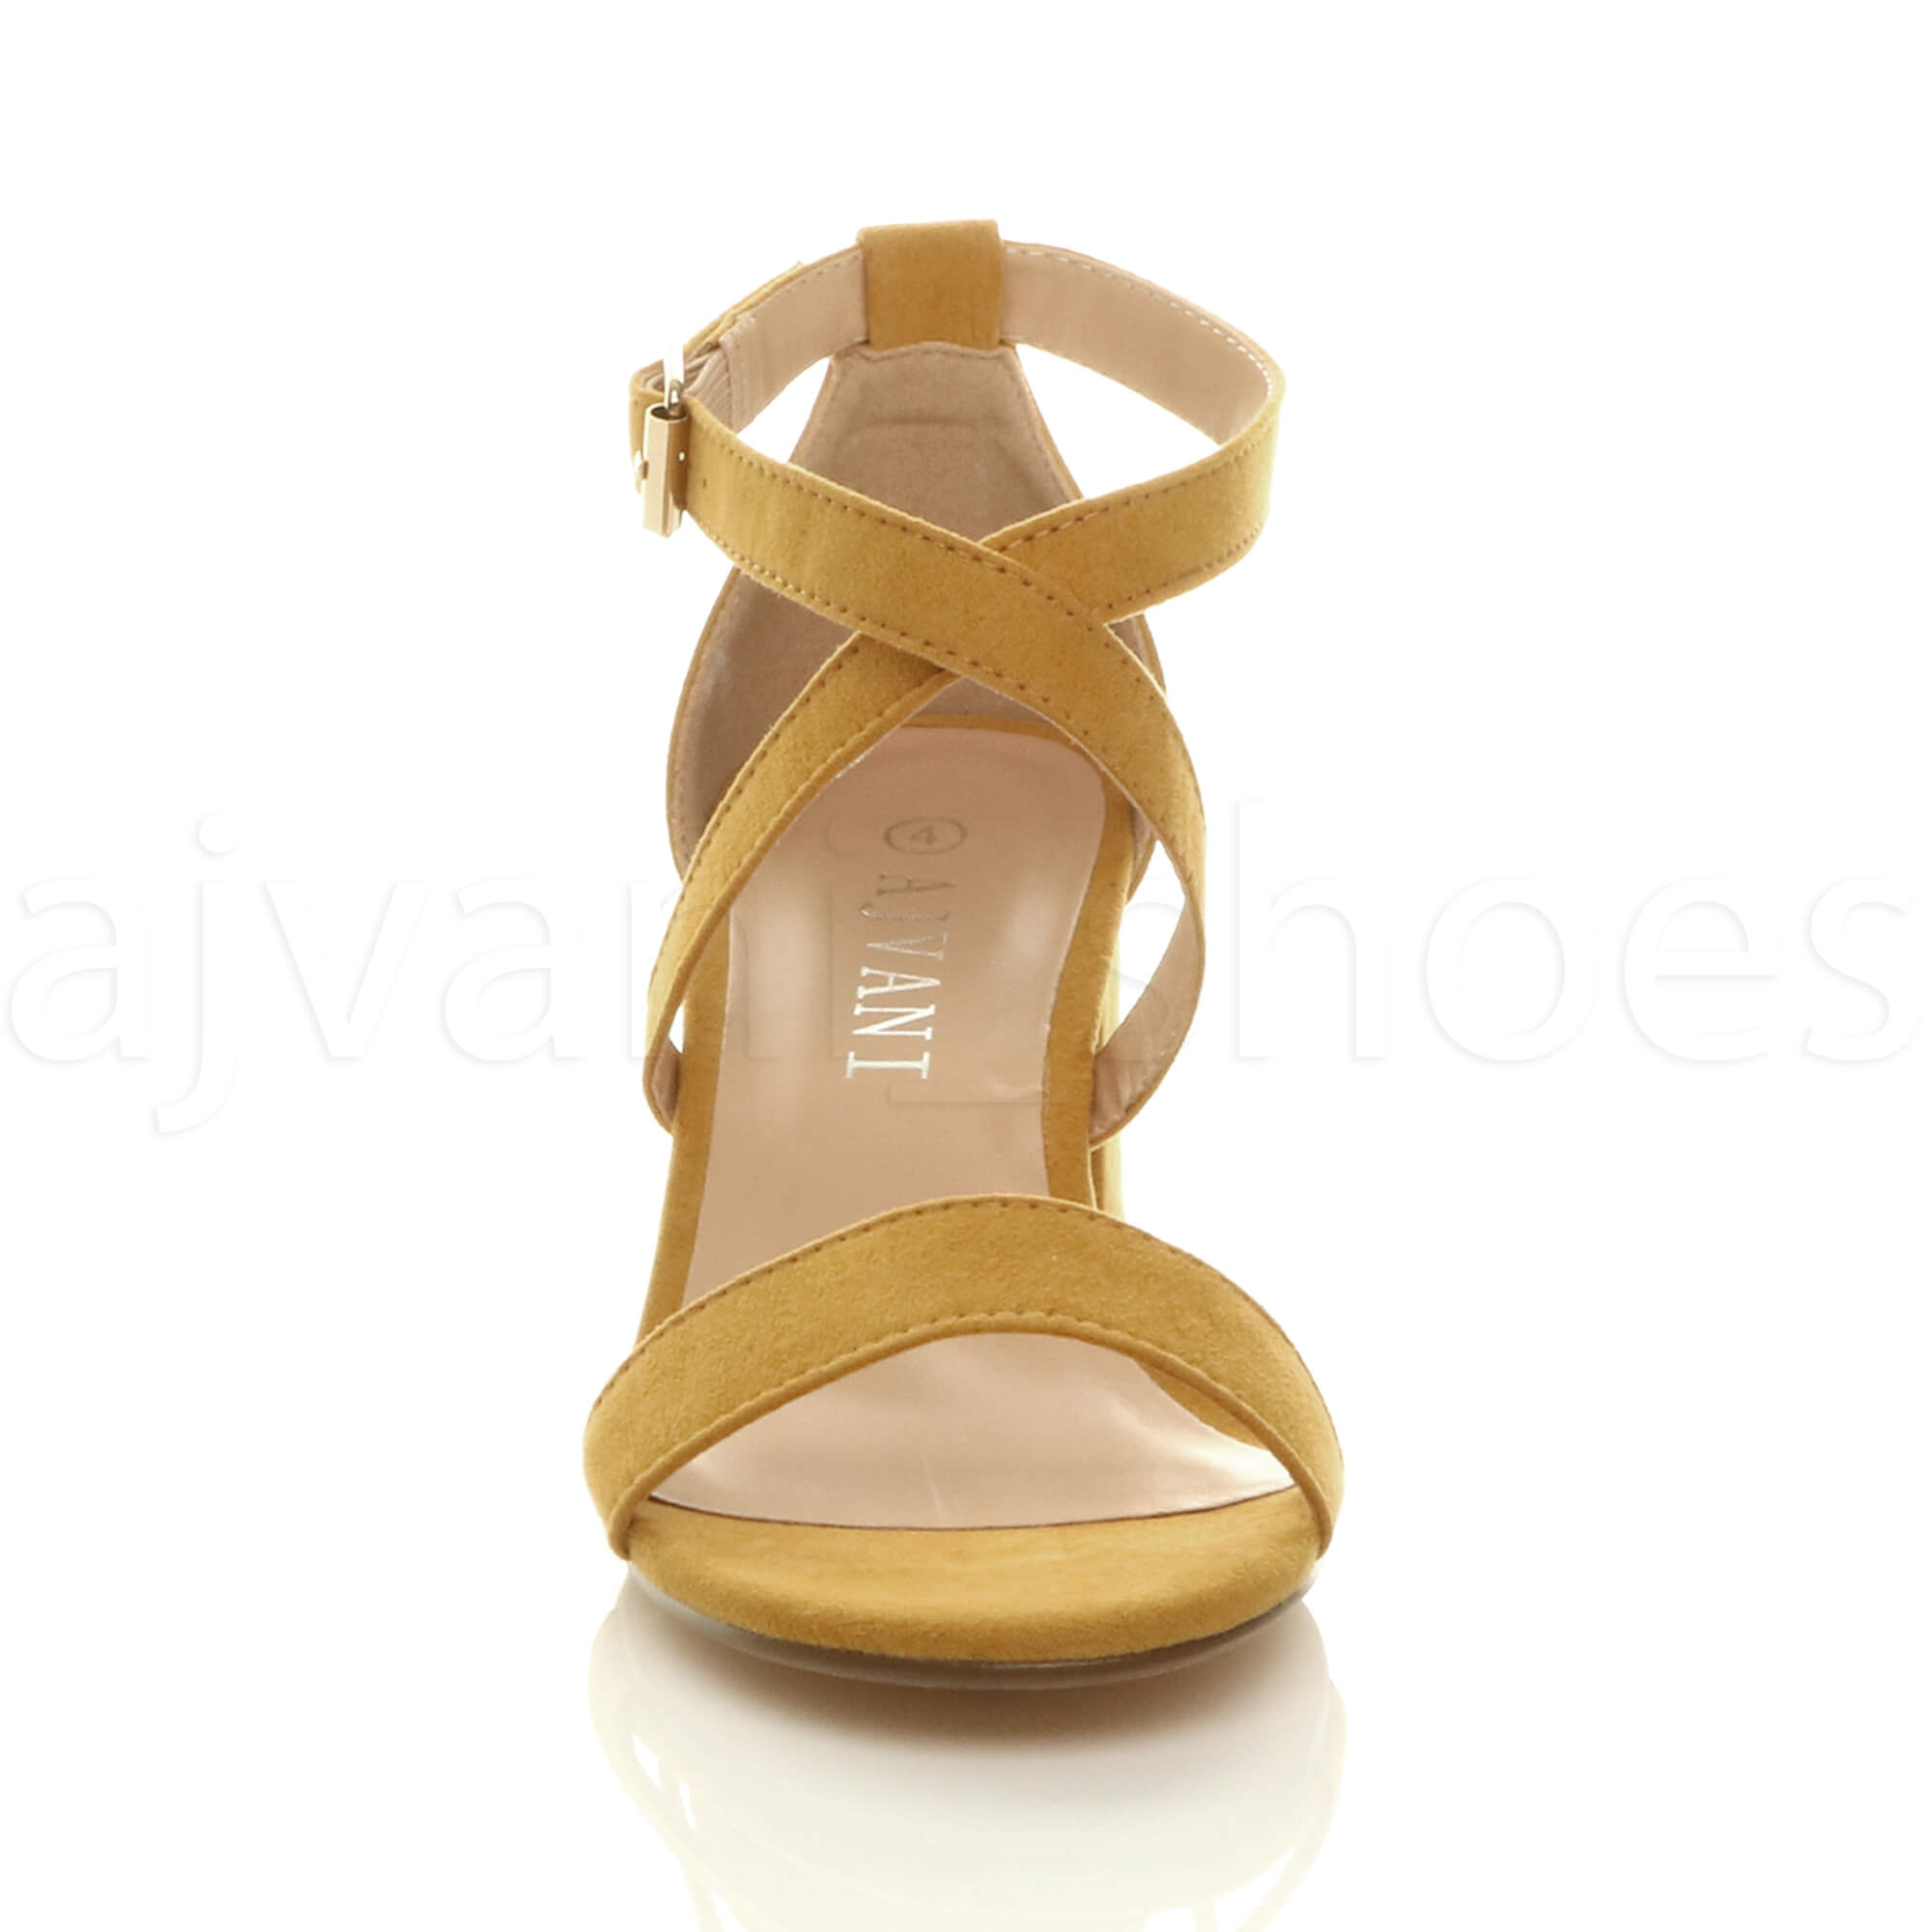 WOMENS-LADIES-MID-LOW-BLOCK-HEEL-CROSS-STRAPS-PARTY-STRAPPY-SANDALS-SHOES-SIZE thumbnail 46